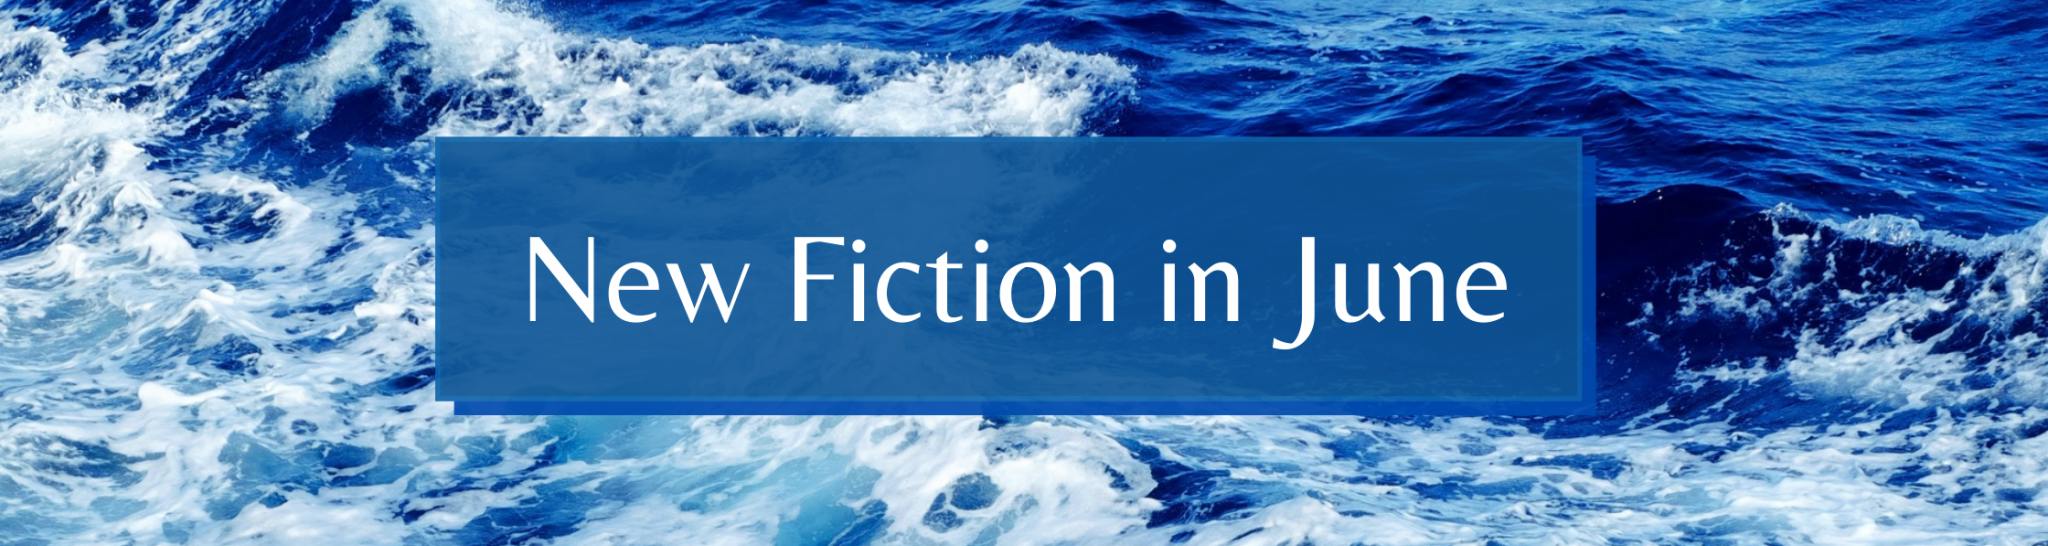 New fiction in June